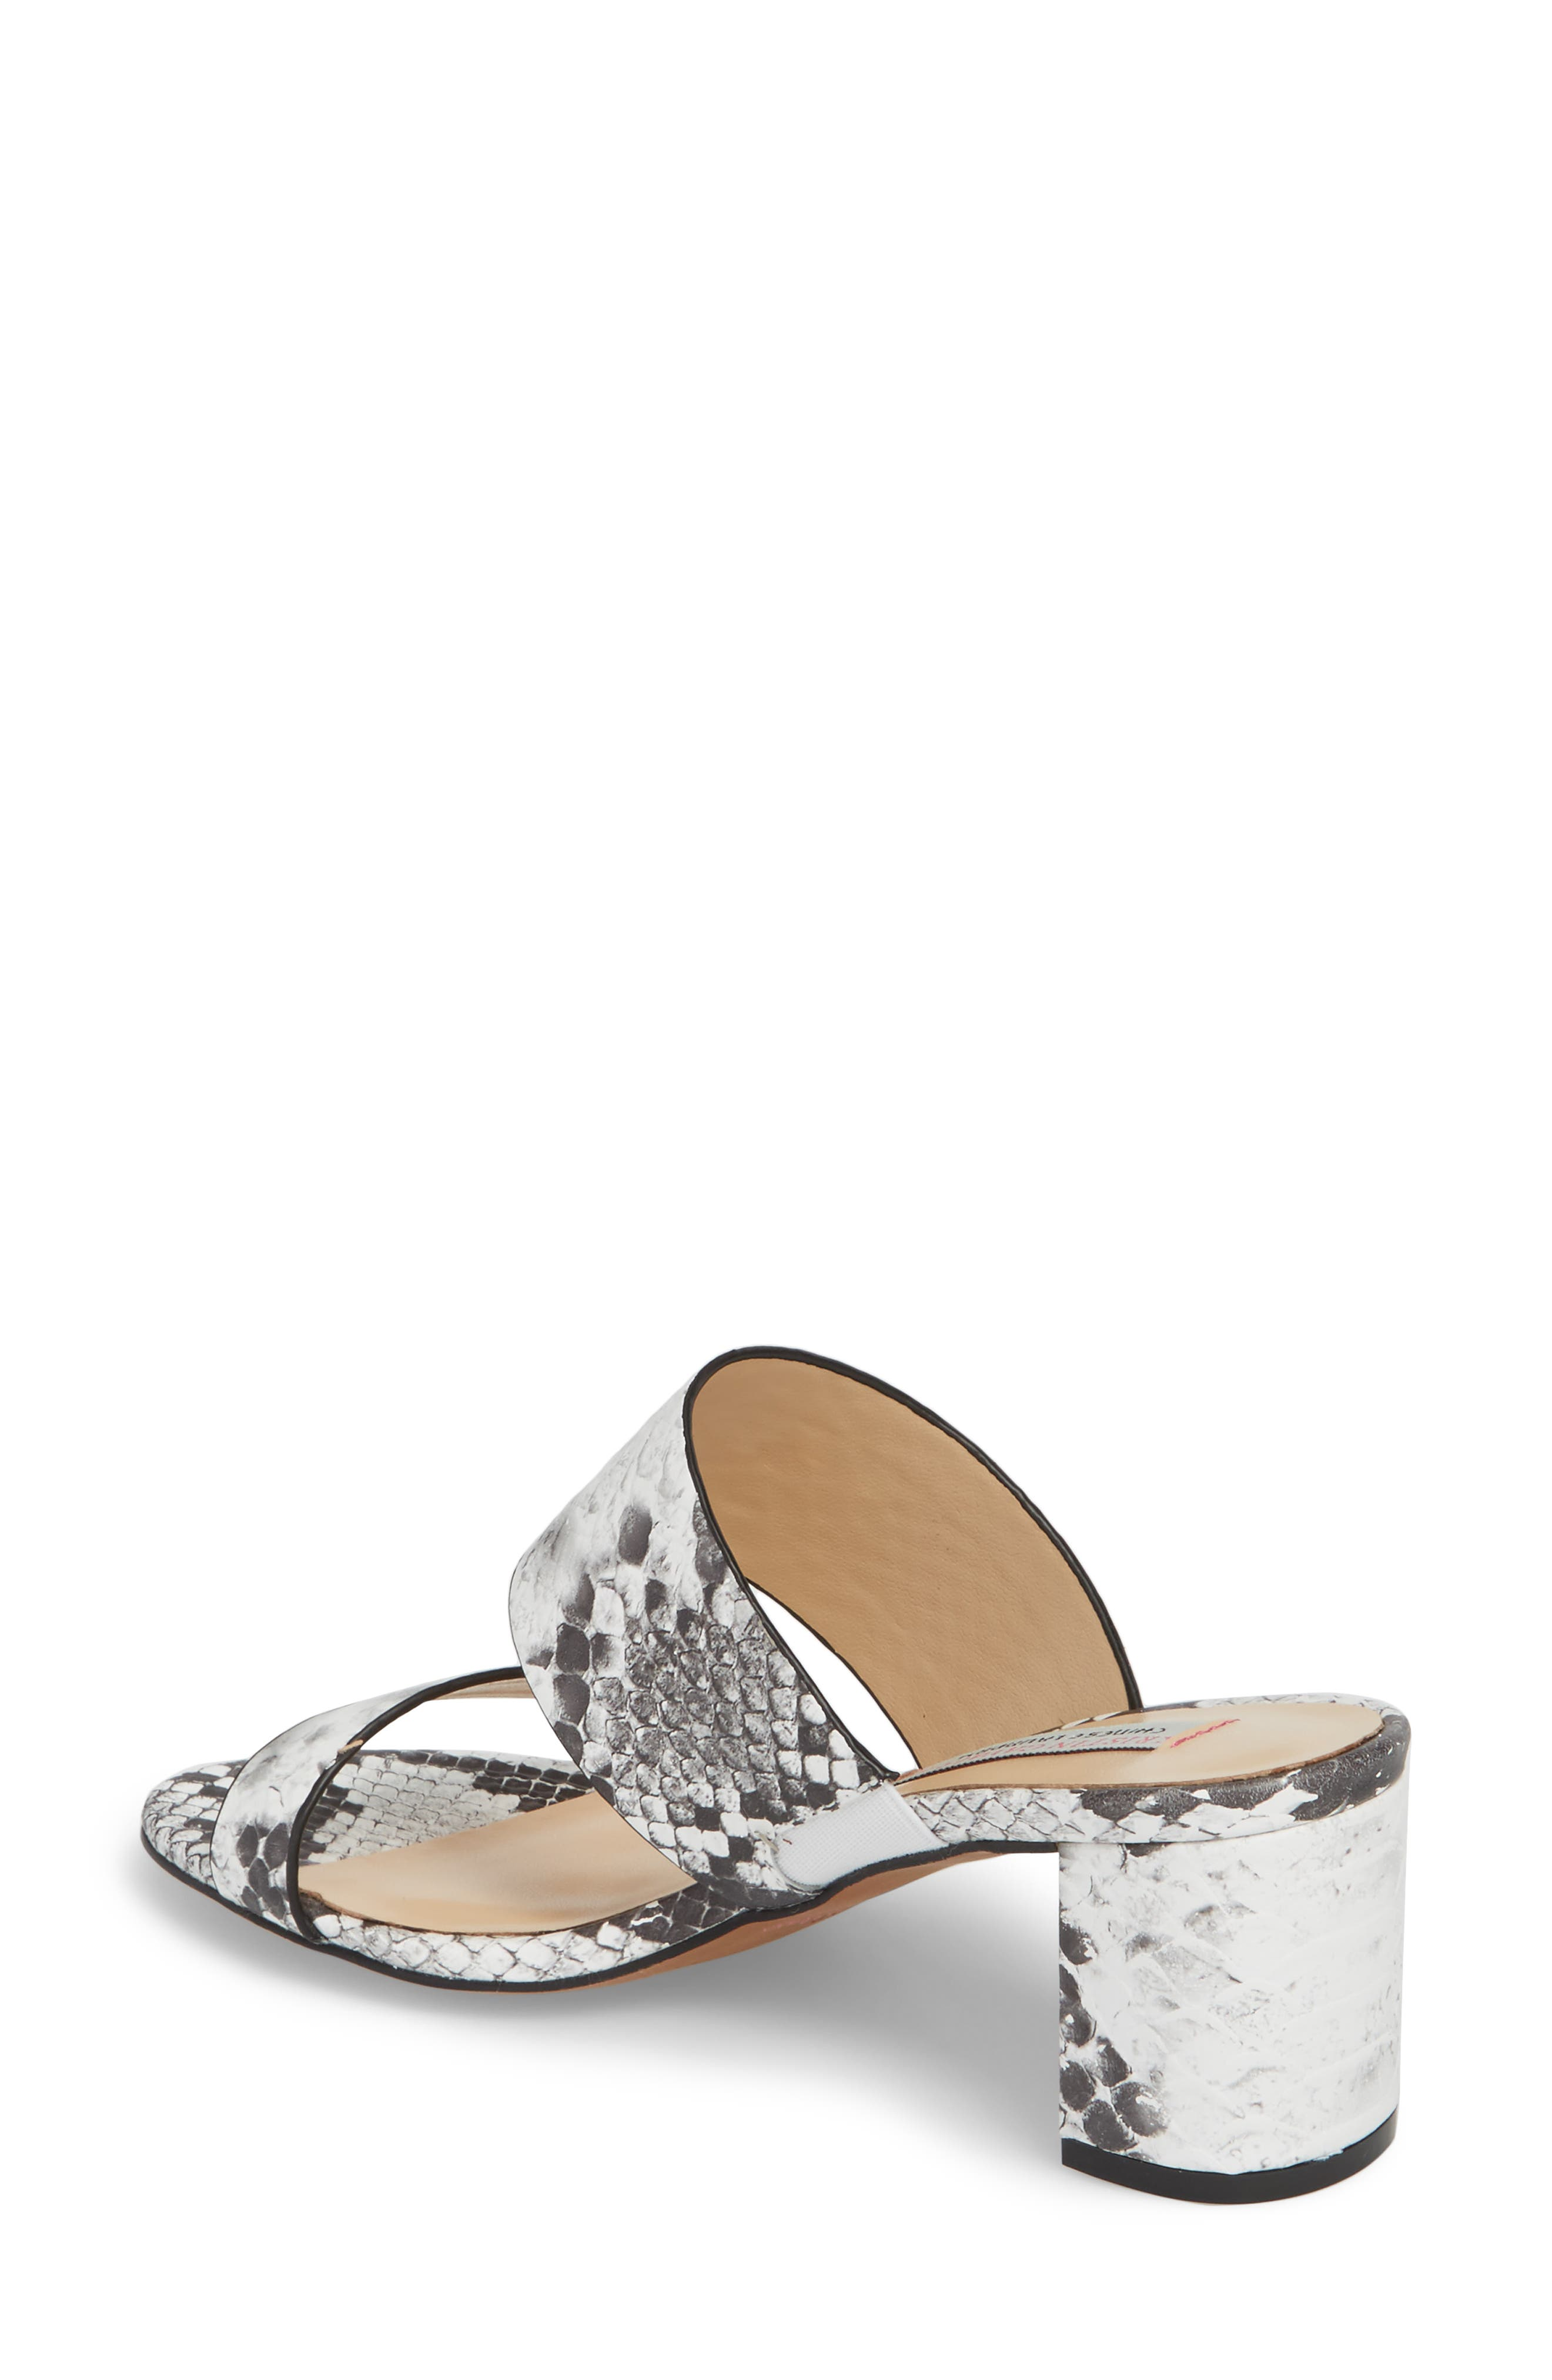 Lakeview Sandal,                             Alternate thumbnail 2, color,                             GREY/ WHITE PRINT LEATHER